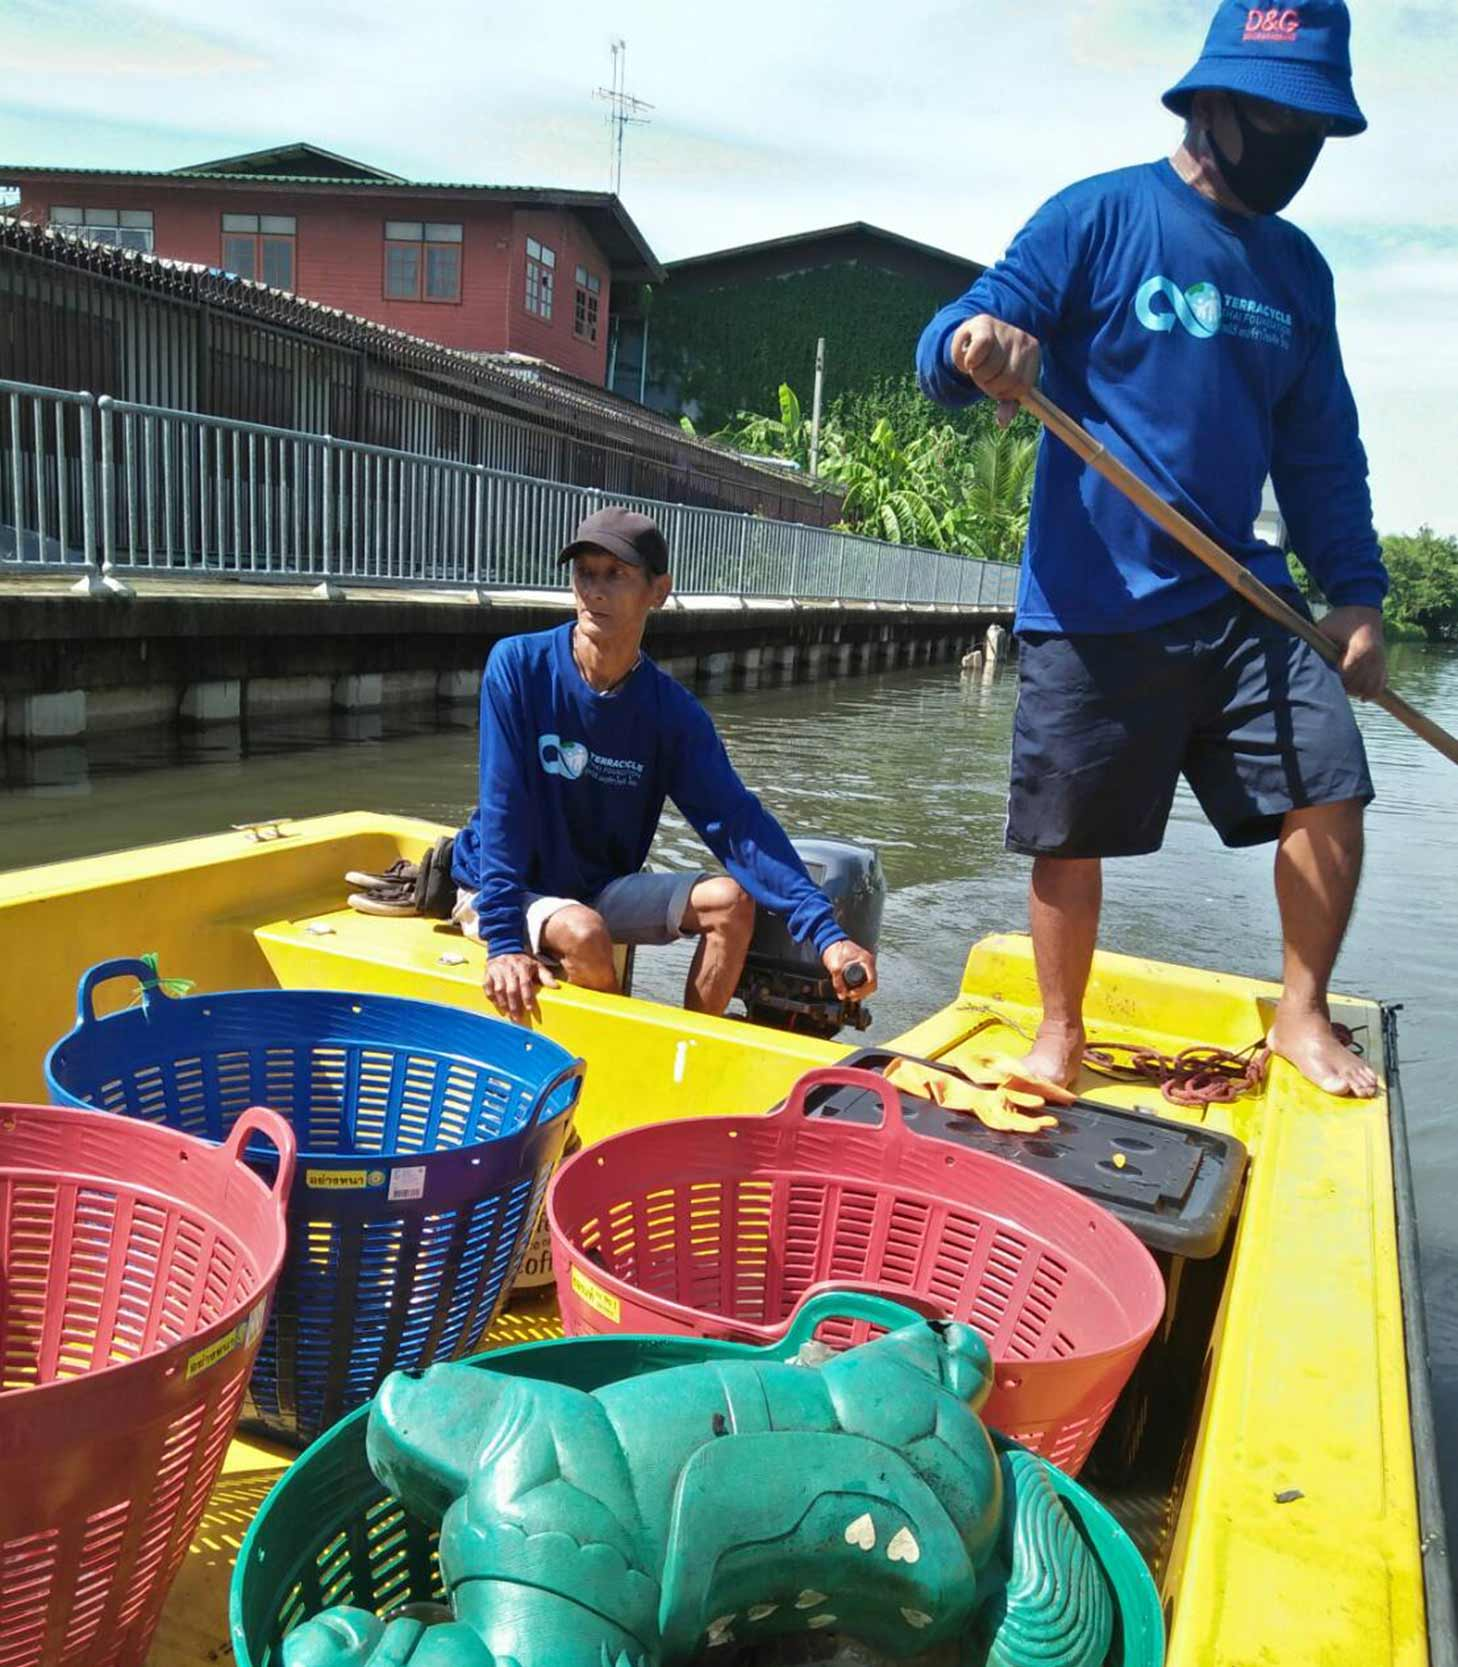 Two men collect plastic items from a river.